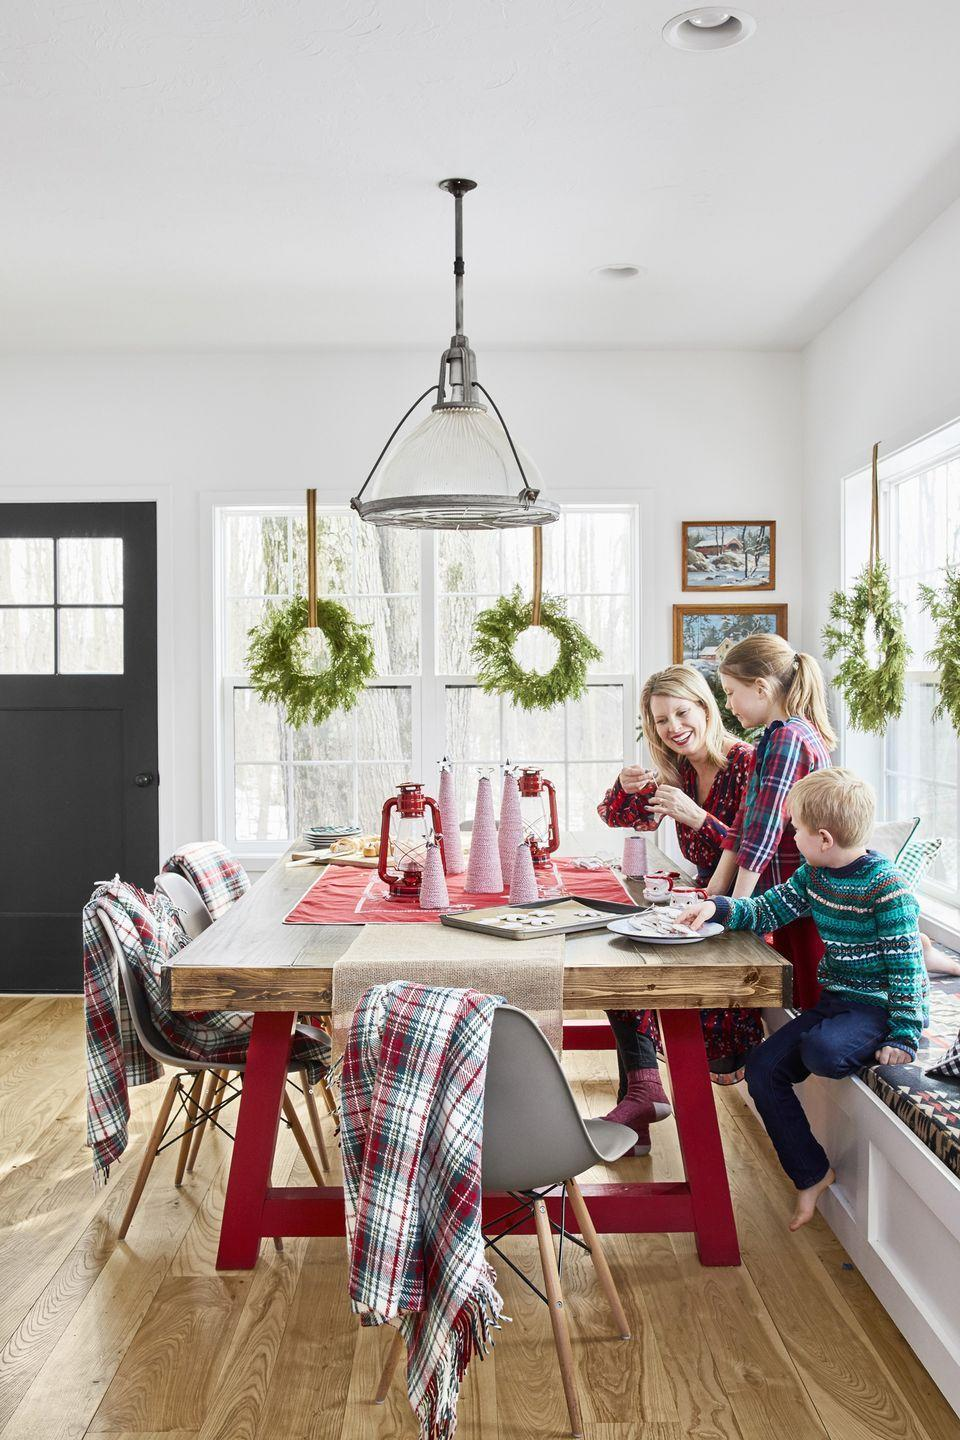 """<p>Crafting sessions take place around a dining room table complete with """"trees"""" made from <a href=""""https://www.amazon.com/FloraCraft-Styrofoam-Cone-Inch-White/dp/B0018NBAIE?tag=syn-yahoo-20&ascsubtag=%5Bartid%7C10050.g.1247%5Bsrc%7Cyahoo-us"""" rel=""""nofollow noopener"""" target=""""_blank"""" data-ylk=""""slk:Styrofoam cones"""" class=""""link rapid-noclick-resp"""">Styrofoam cones</a> covered in <a href=""""https://www.amazon.com/eBoot-Cotton-Kitchen-Cooking-Wrapping/dp/B019F7XP5A?tag=syn-yahoo-20&ascsubtag=%5Bartid%7C10050.g.1247%5Bsrc%7Cyahoo-us"""" rel=""""nofollow noopener"""" target=""""_blank"""" data-ylk=""""slk:baker's twine"""" class=""""link rapid-noclick-resp"""">baker's twine</a> and topped with <a href=""""https://www.amazon.com/Ann-Clark-Star-Cookie-Cutter/dp/B01GVUYT4U?tag=syn-yahoo-20&ascsubtag=%5Bartid%7C10050.g.1247%5Bsrc%7Cyahoo-us"""" rel=""""nofollow noopener"""" target=""""_blank"""" data-ylk=""""slk:star cookie cutters"""" class=""""link rapid-noclick-resp"""">star cookie cutters</a>.</p><p><a class=""""link rapid-noclick-resp"""" href=""""https://www.amazon.com/Ann-Clark-Star-Cookie-Cutter/dp/B01GVUYT4U?tag=syn-yahoo-20&ascsubtag=%5Bartid%7C10050.g.1247%5Bsrc%7Cyahoo-us"""" rel=""""nofollow noopener"""" target=""""_blank"""" data-ylk=""""slk:SHOP COOKIE CUTTERS"""">SHOP COOKIE CUTTERS</a></p>"""